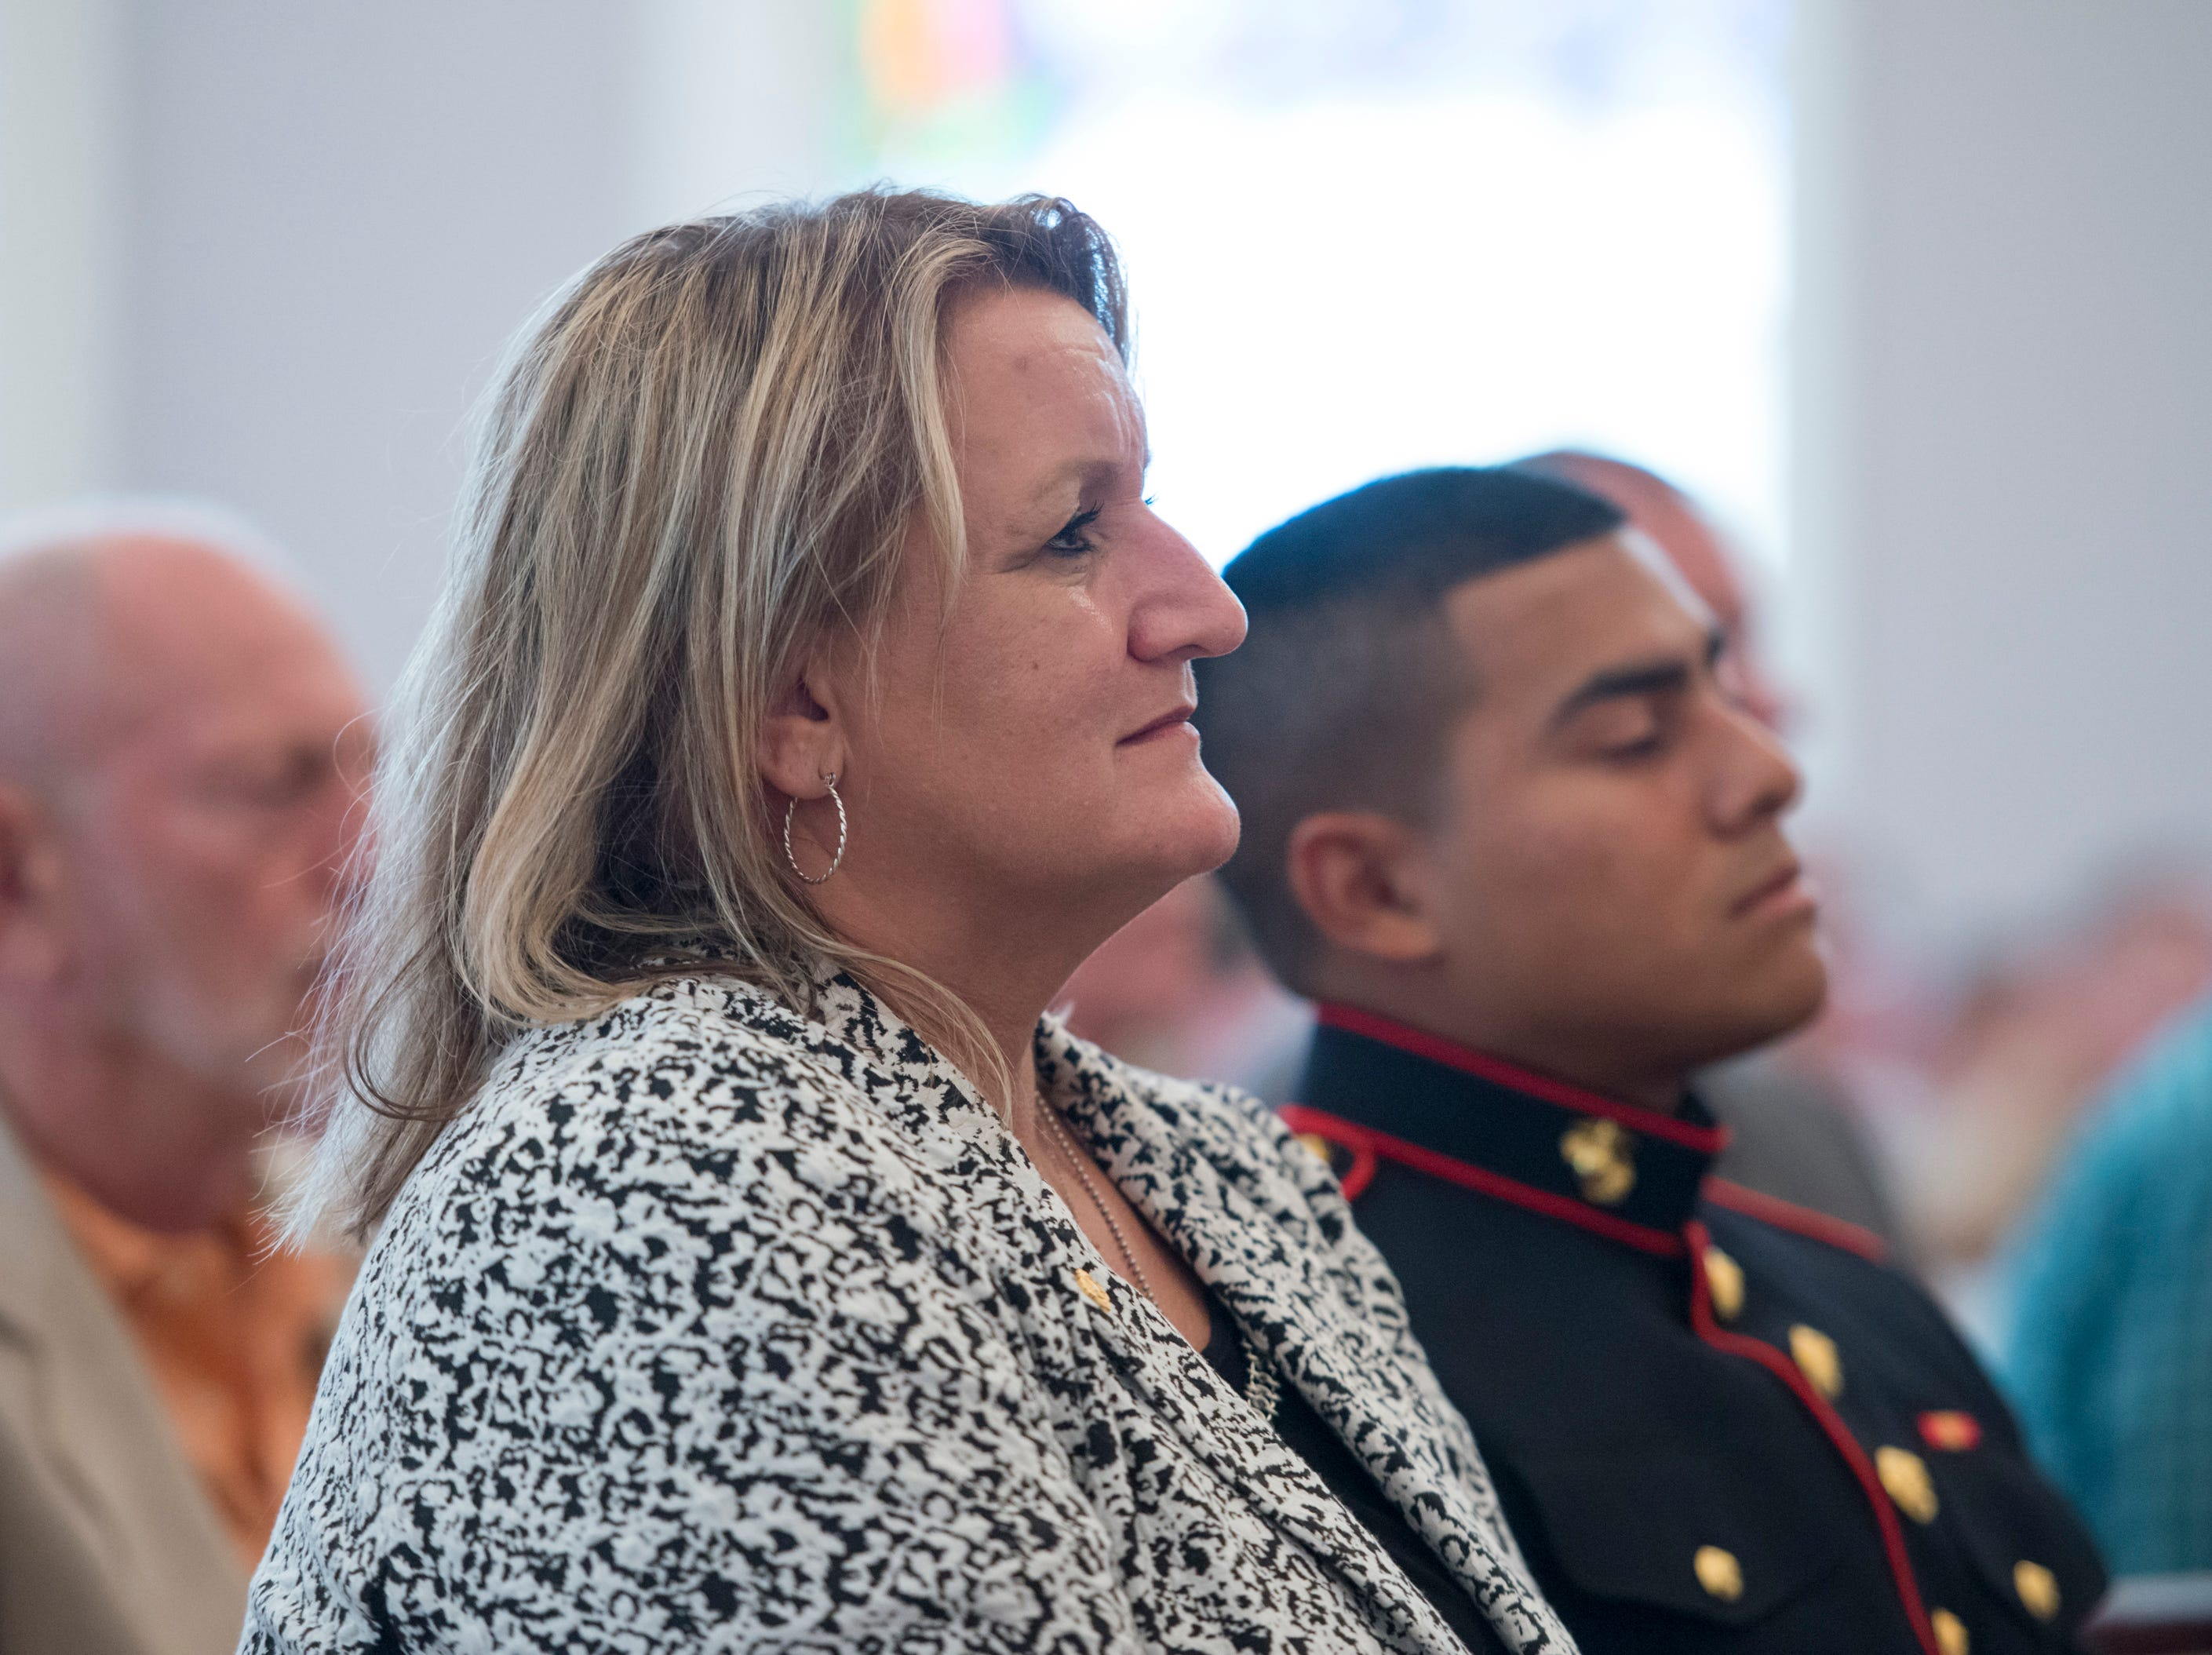 "JoAnn Boussouar, of Milton, listens during the Gold Star Program's ""Bells Across America for Fallen Service Members"" remembrance ceremony at the Naval Air Station in Pensacola on Thursday, September 27, 2018.  Boussouar lost her son - Missississippi National Guard Sgt. Kyle Thomas on Memorial Day in 2017.  Thomas was killed when his M1 Abrams Main Battle Tank overturned during an exercise preparing for deployment to the Middle East."